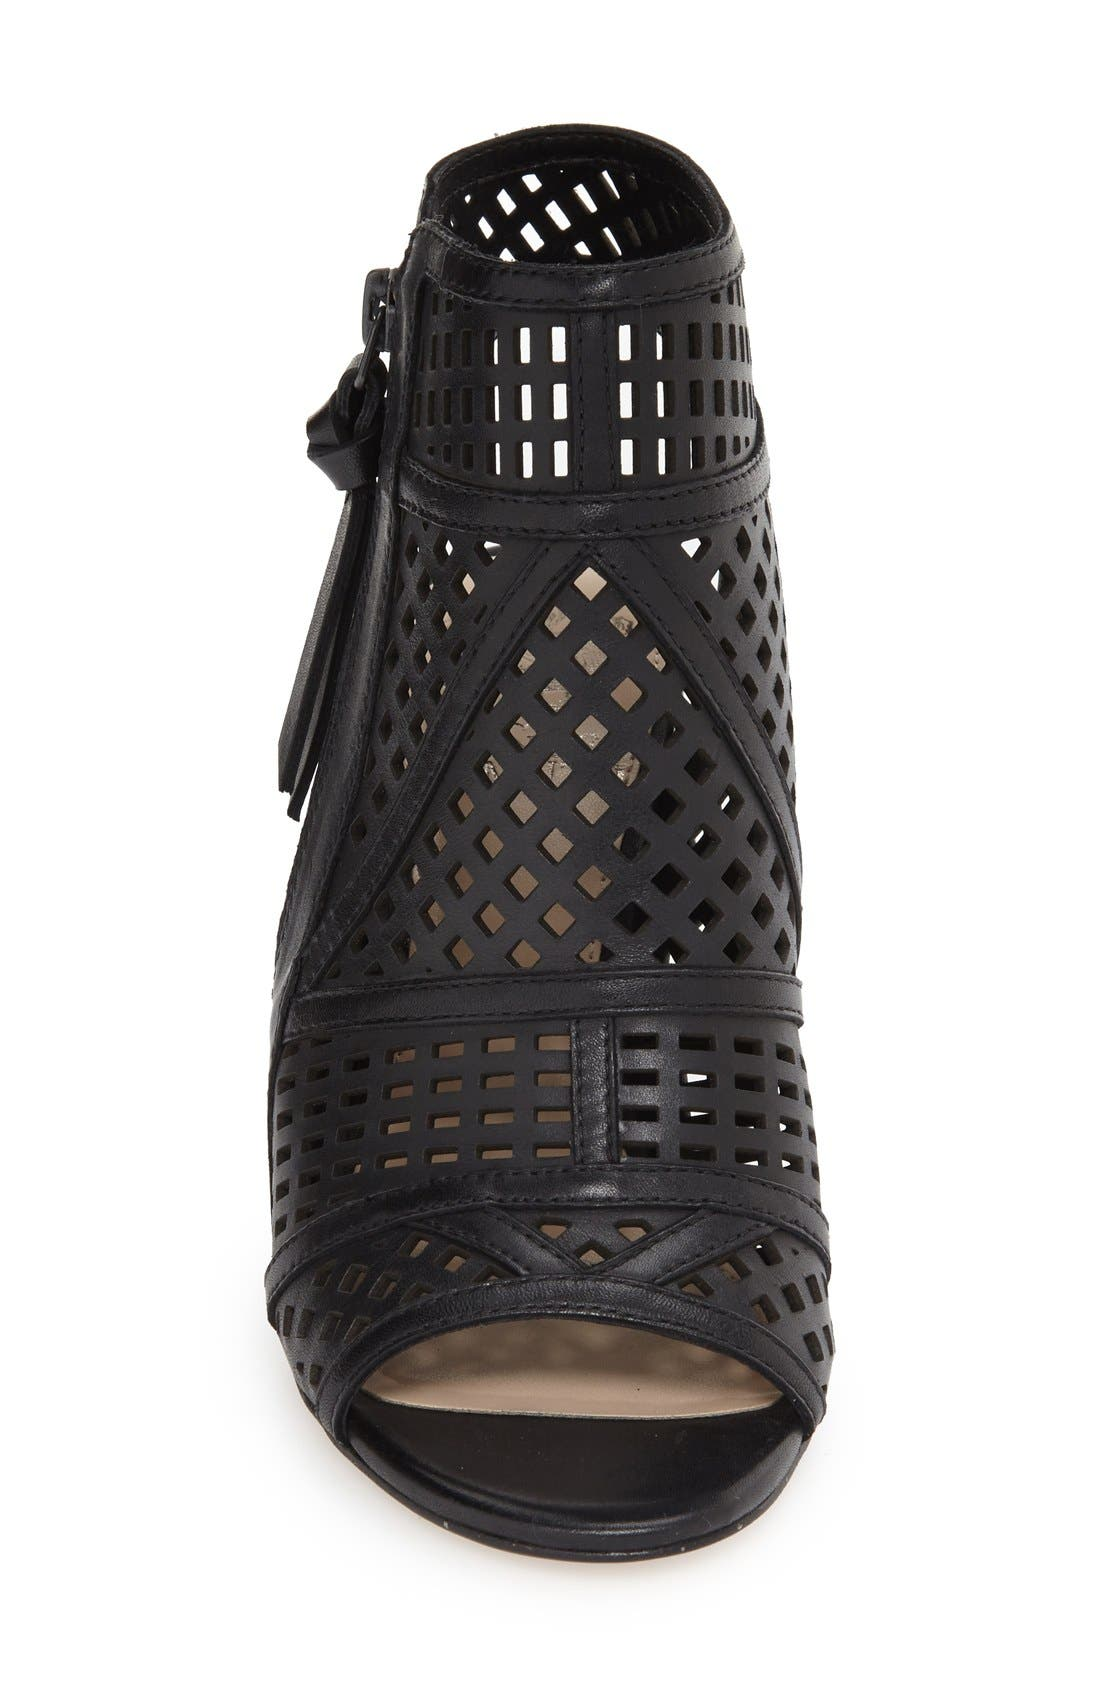 Alternate Image 3  - Vince Camuto 'Xabrina' Perforated Wedge Sandal (Women)